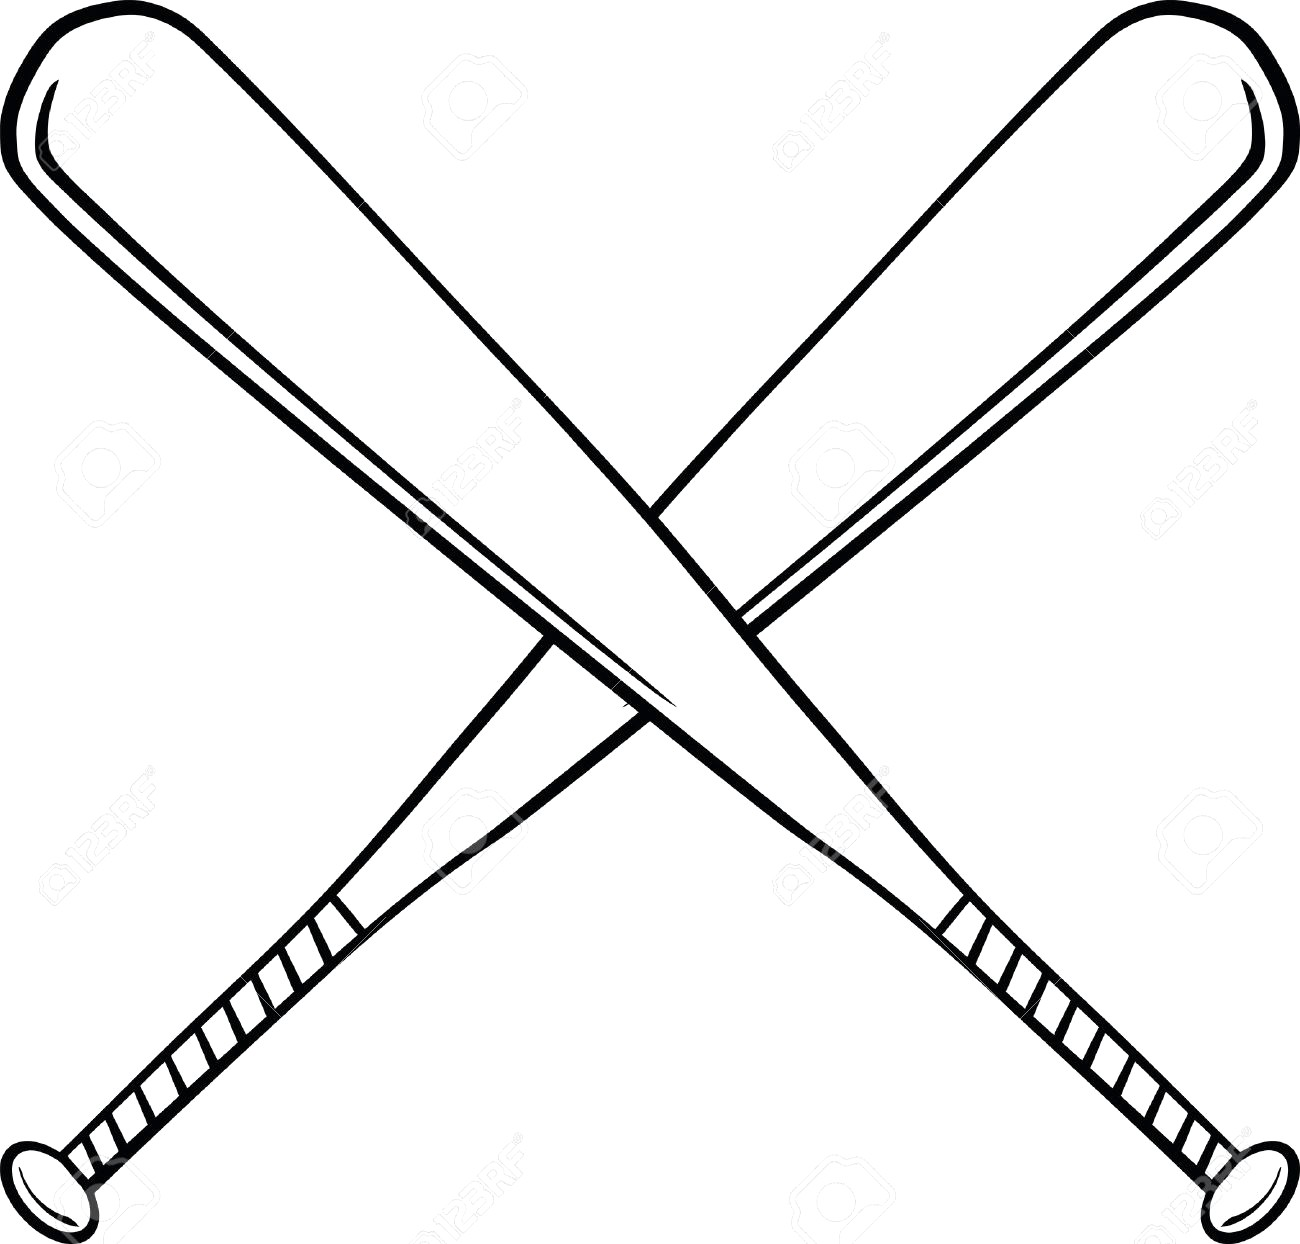 Baseball Bat Vector Free at GetDrawings.com.